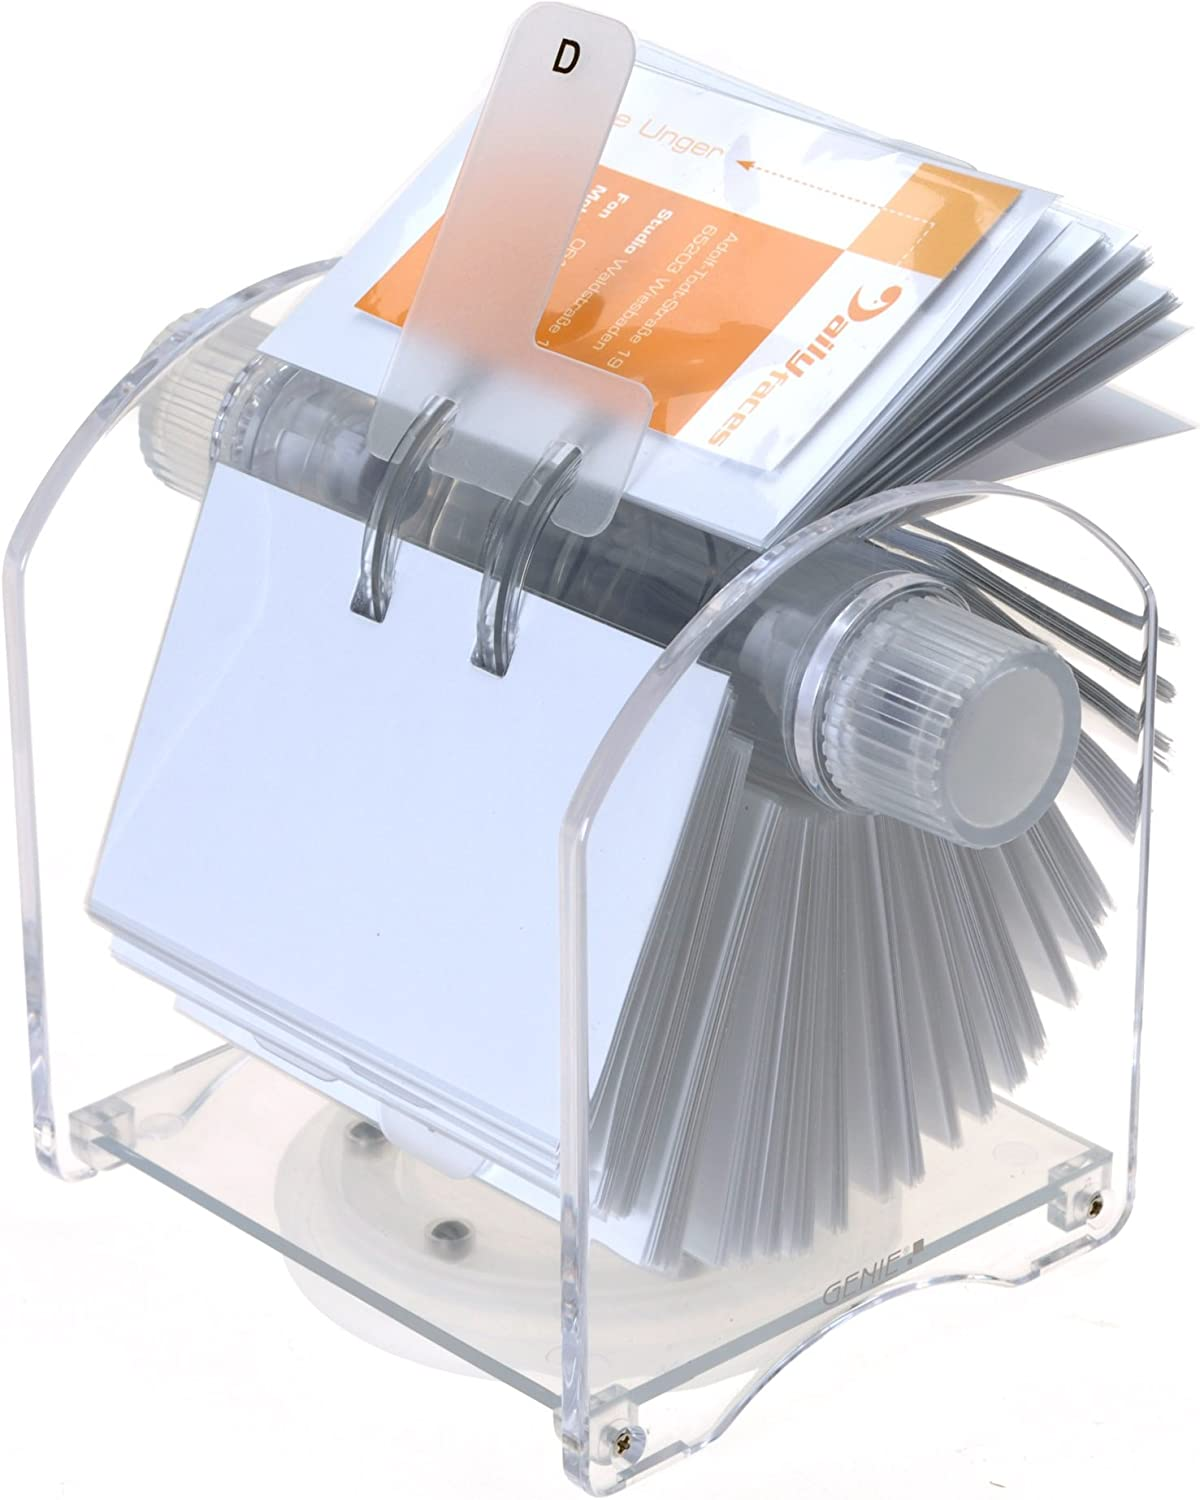 Genie Rotator Rotary File for 400 Business Cards with 24-Part Register and 200 Transparent Sleeves